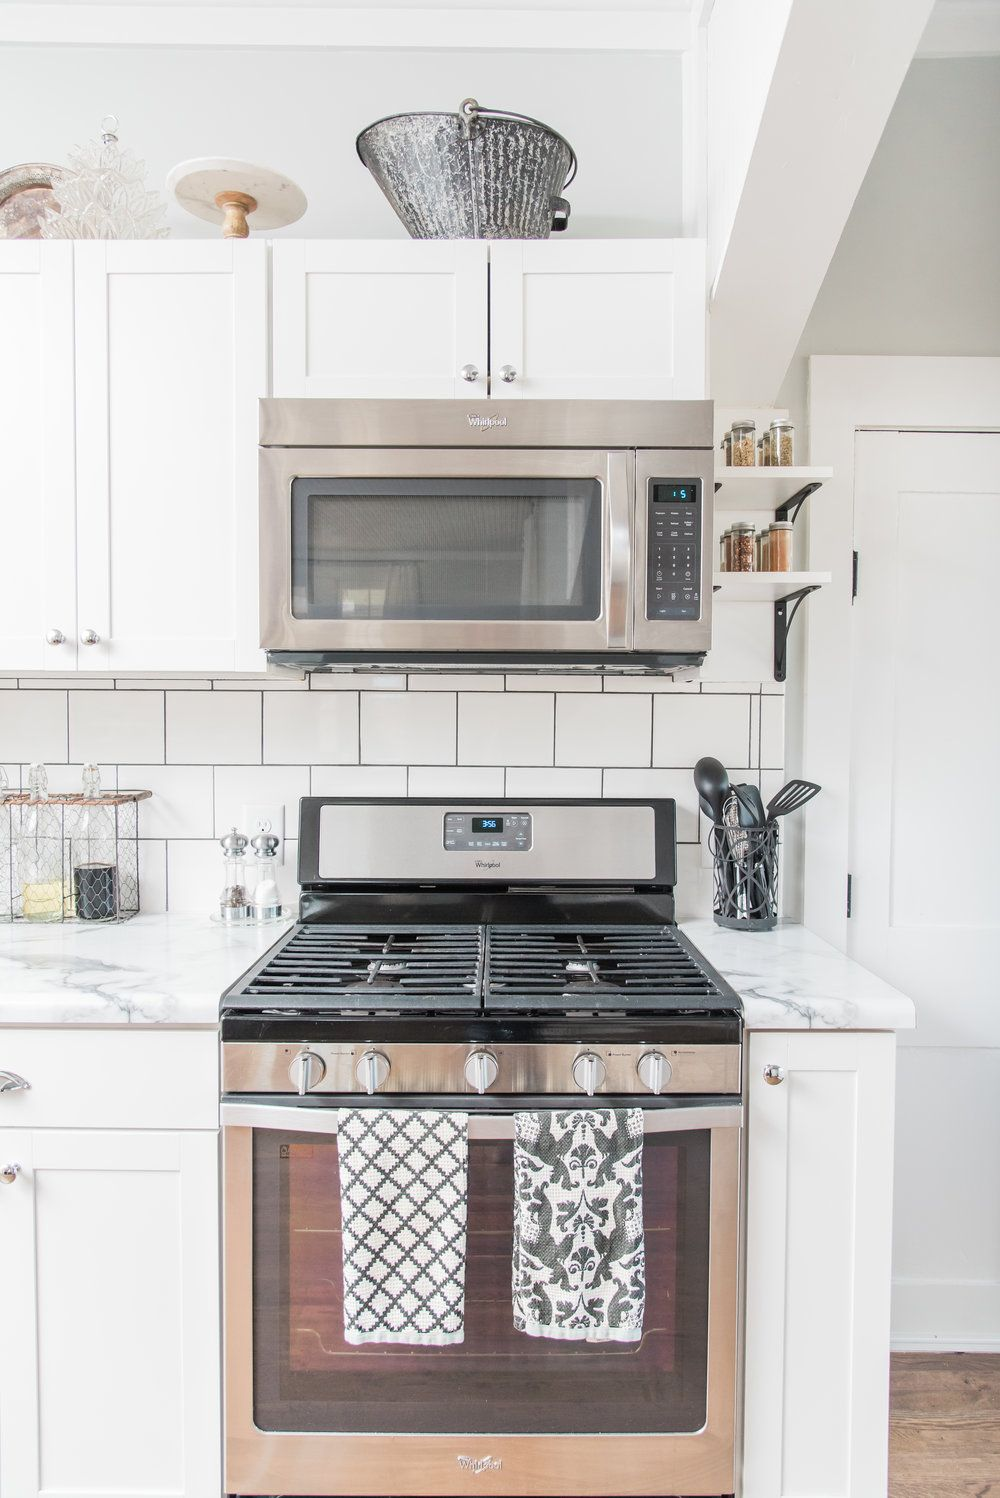 Lowe S Stock Cabinets Review In 2020 Lowes Kitchen Cabinets Budget Kitchen Remodel Galley Kitchen Remodel